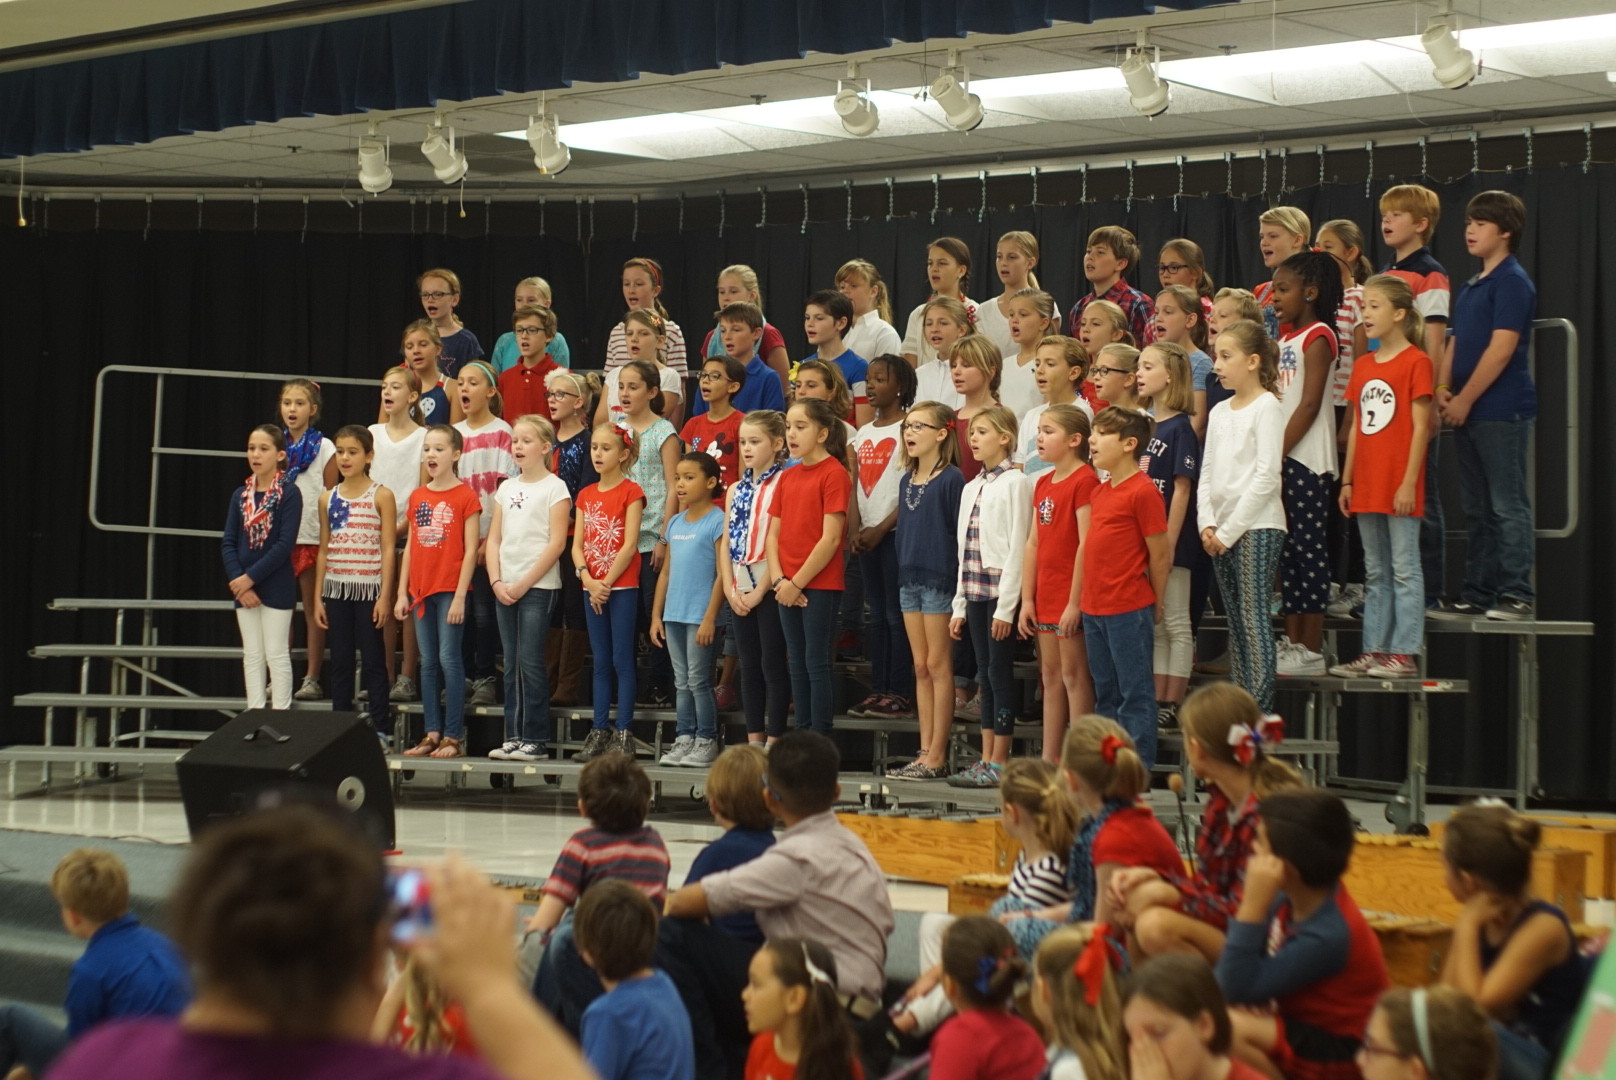 Ocean Palms Elementary Presents A Musical Show Of Thanks